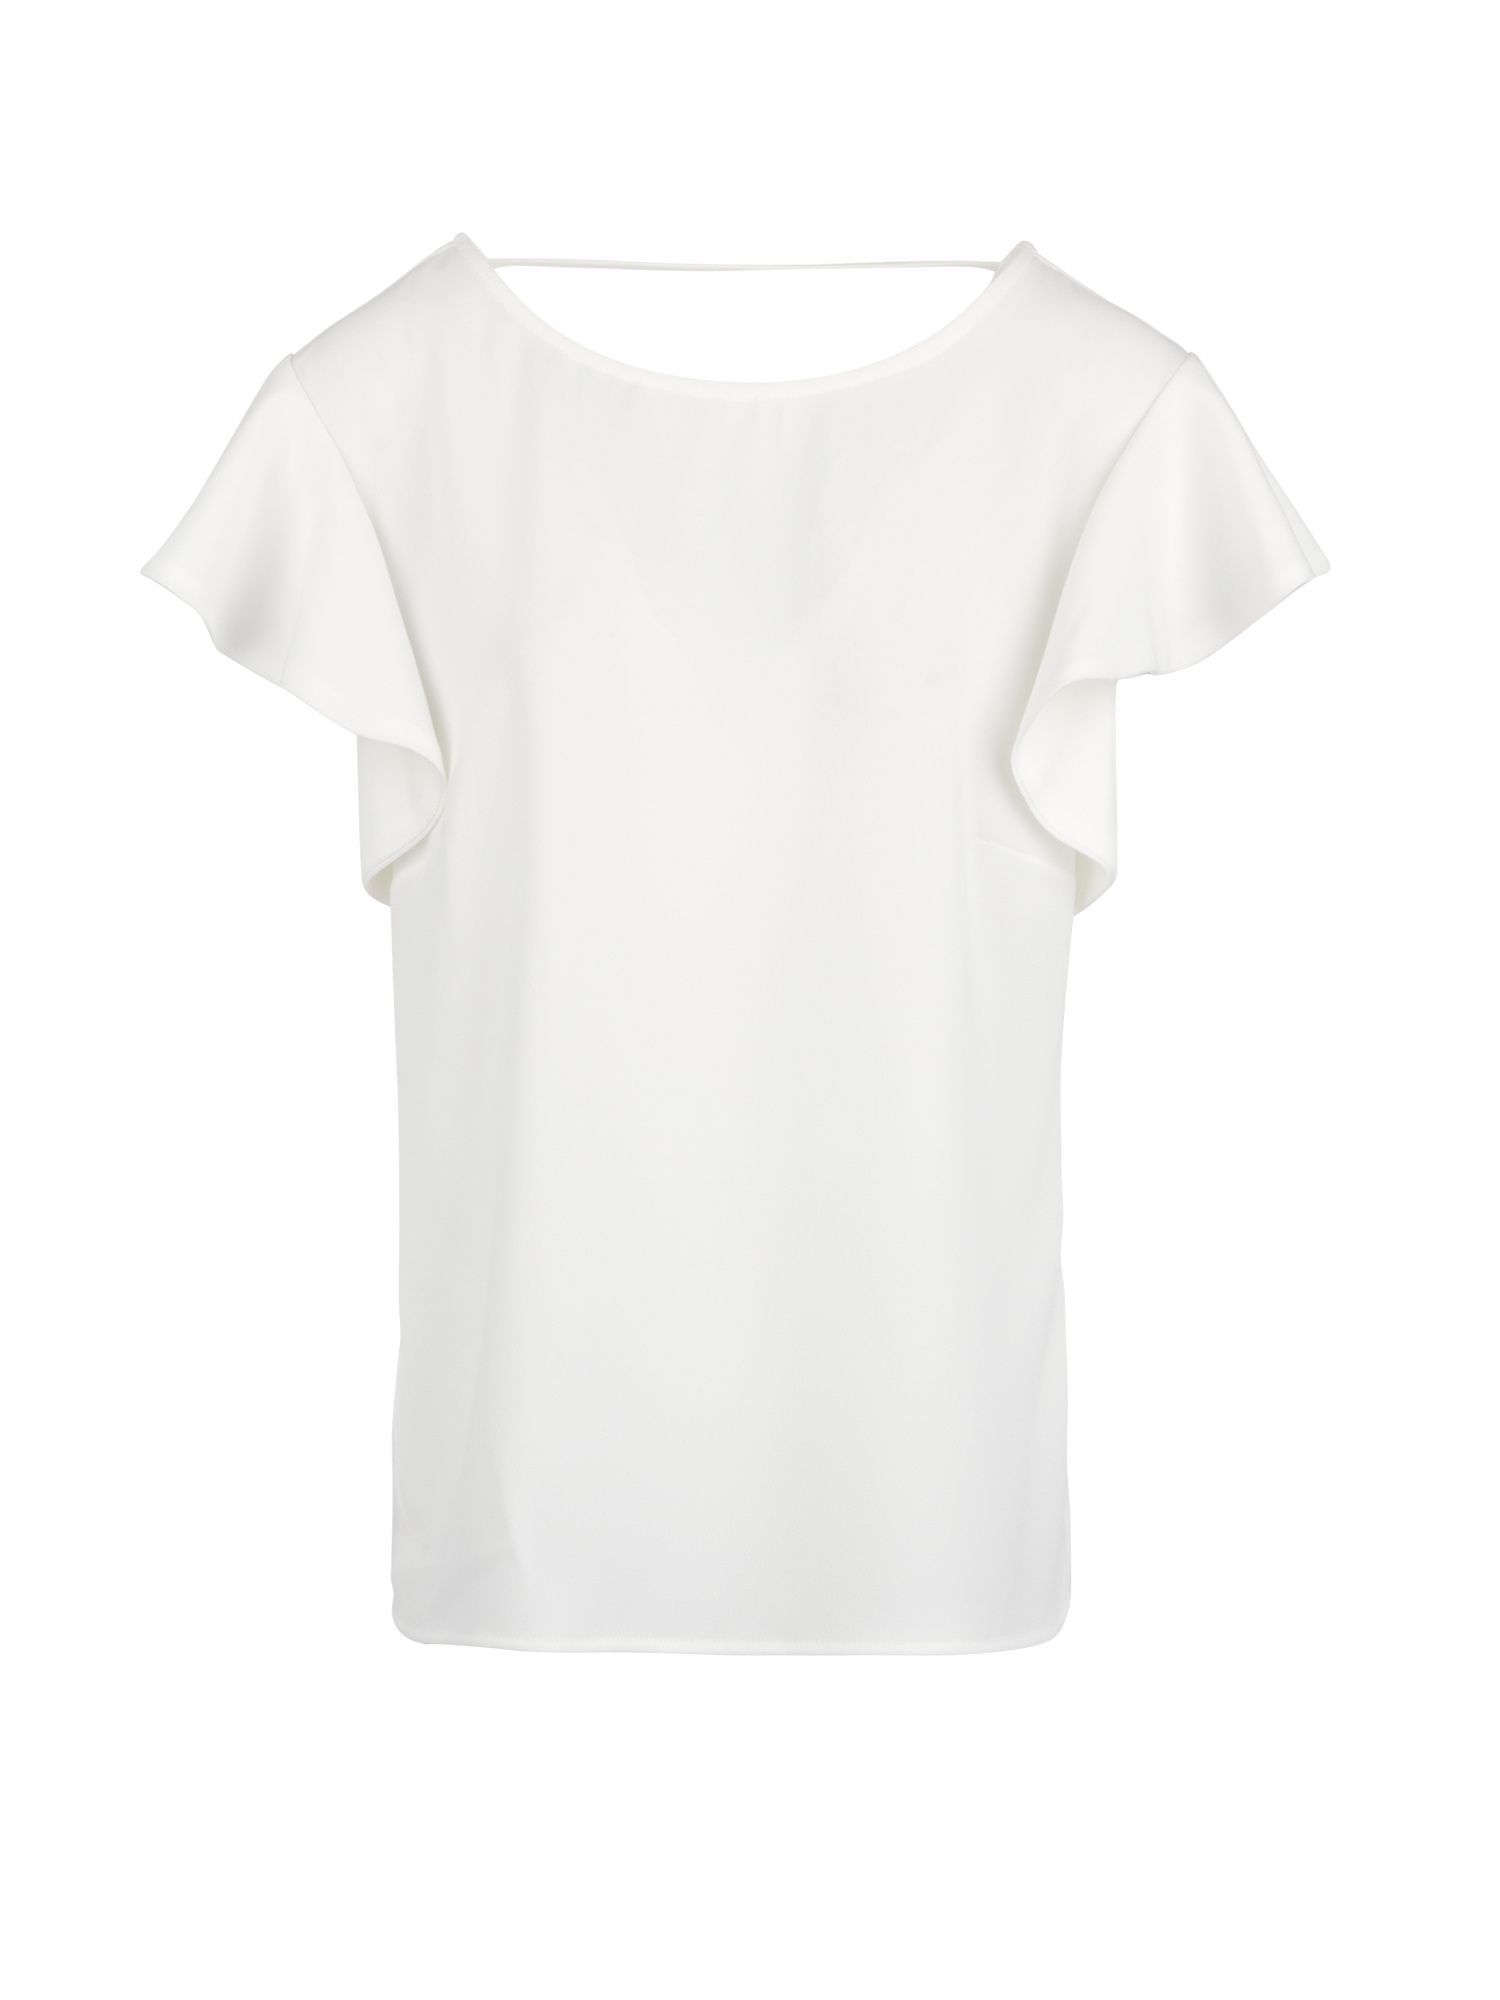 Morgan Crepe Top With Ruffled Sleeves, Off White